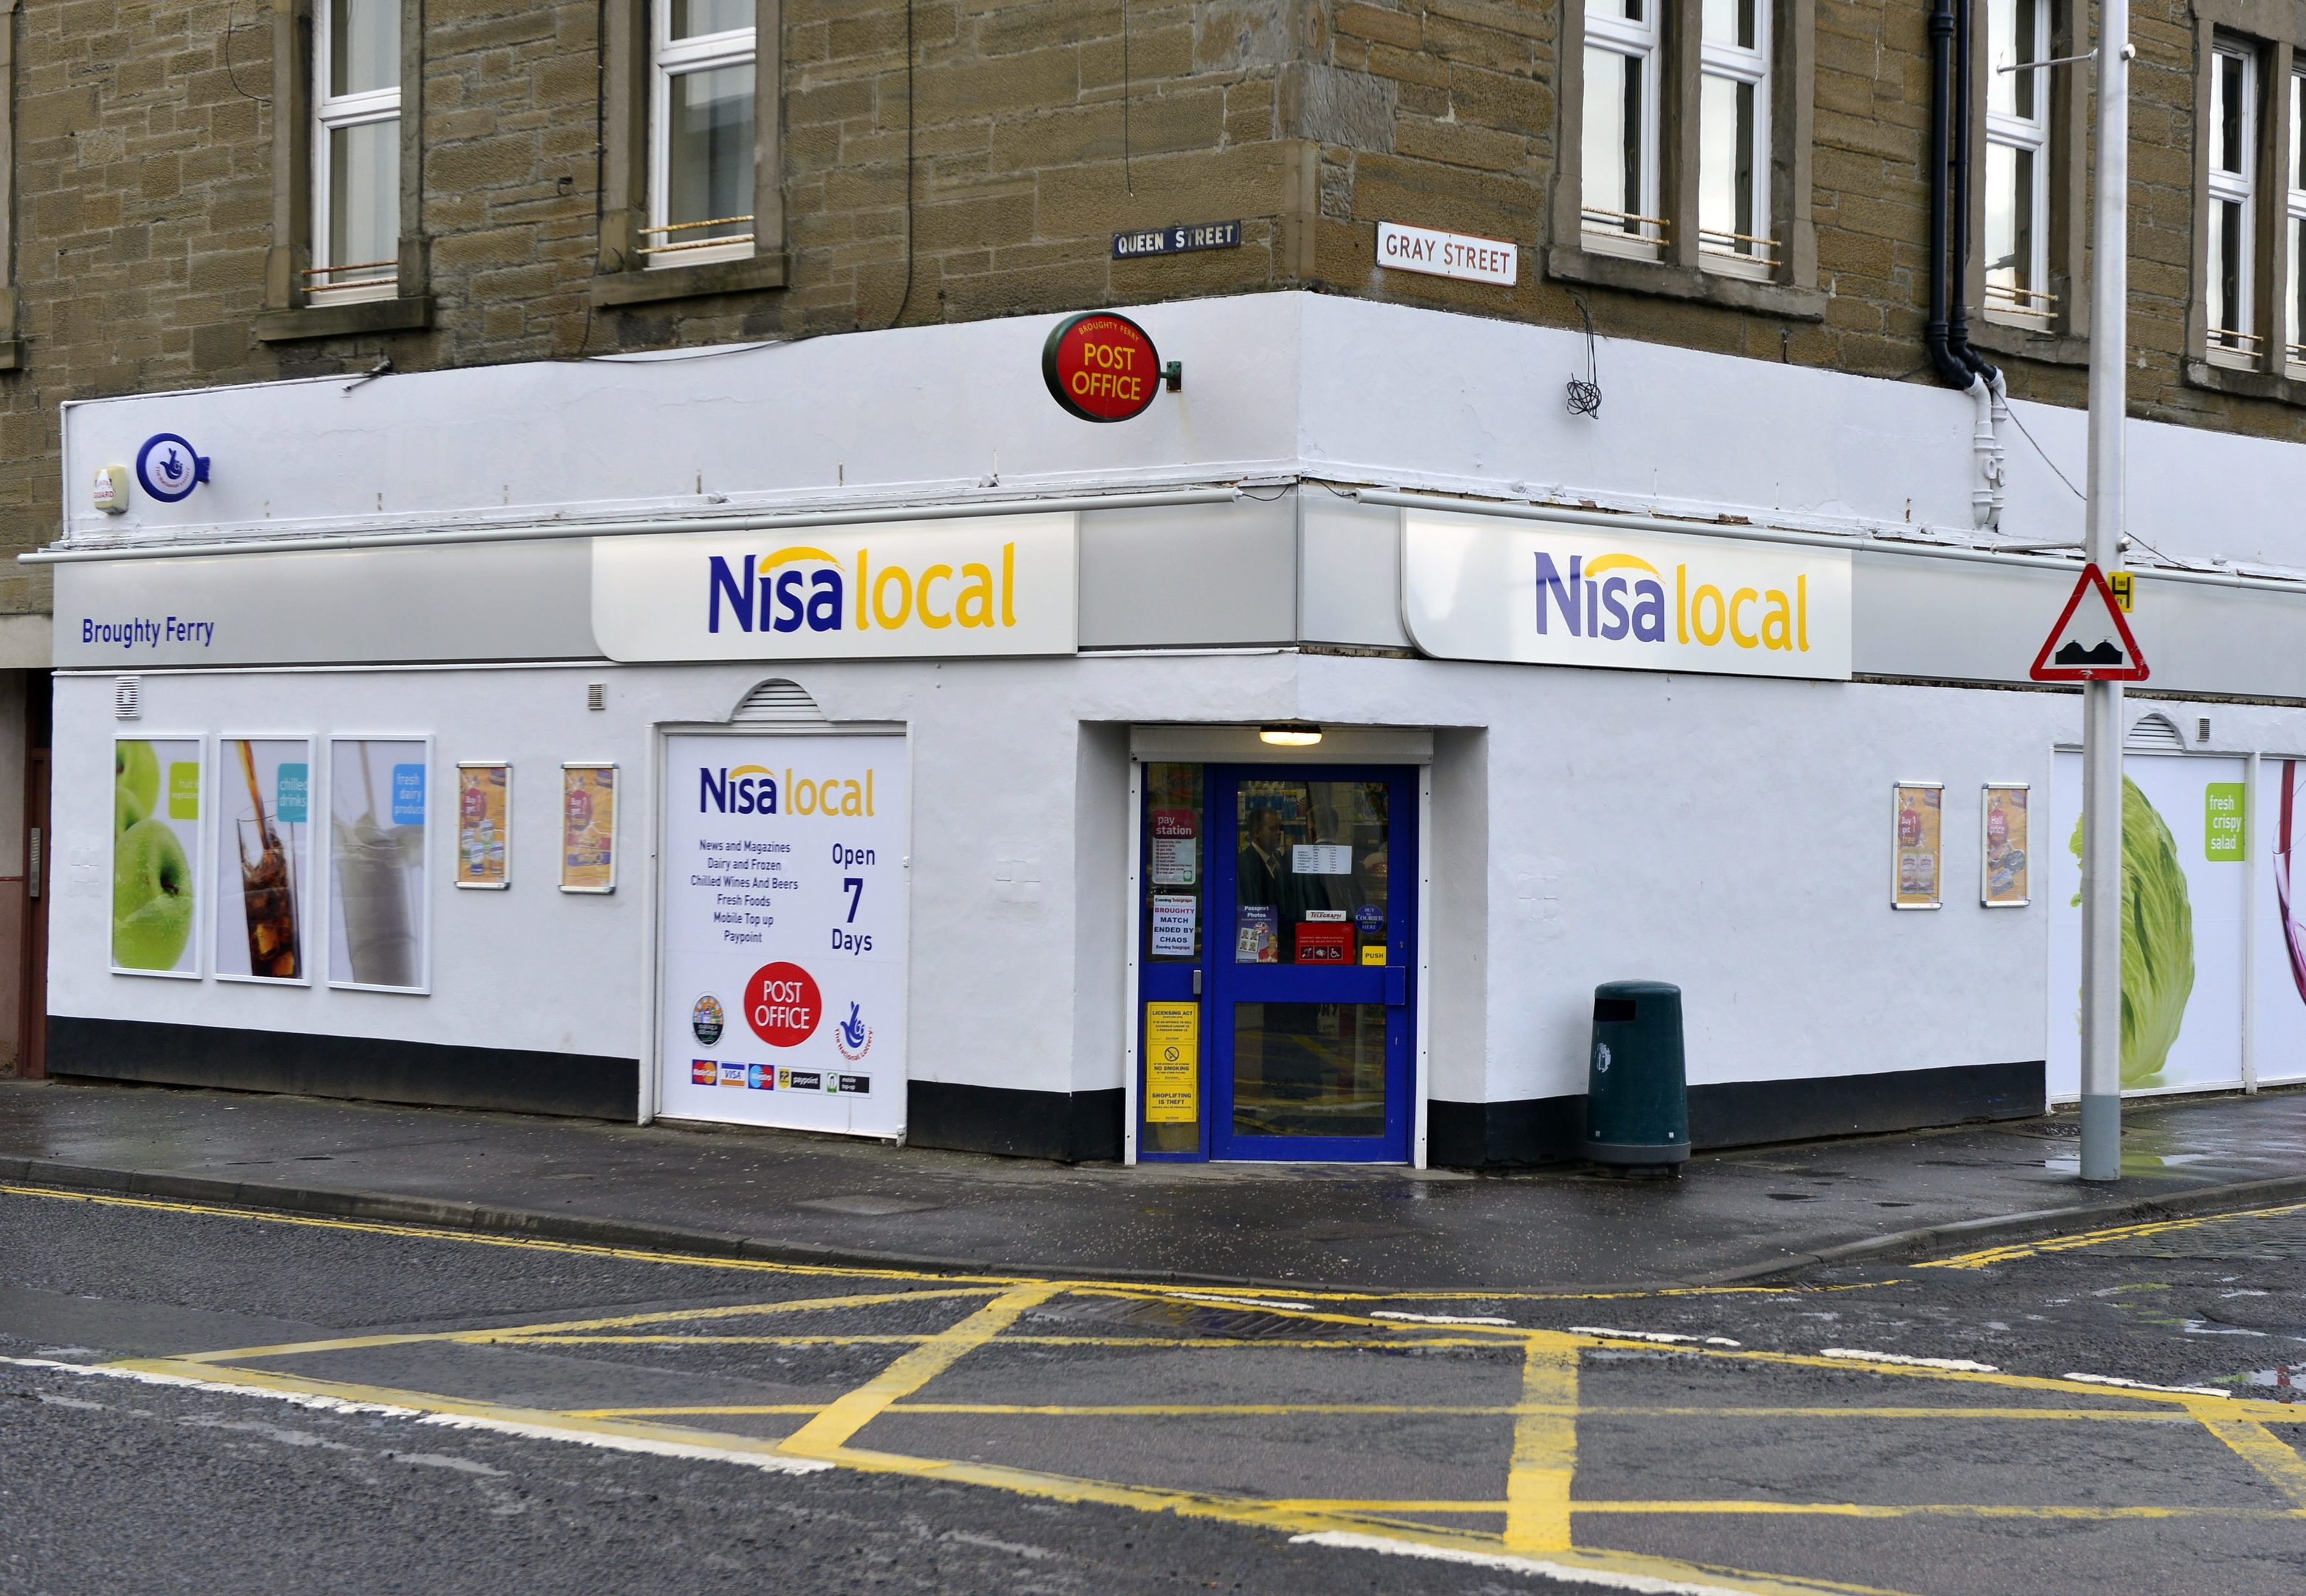 The post office counter was inside the NISA store on Gray Street.